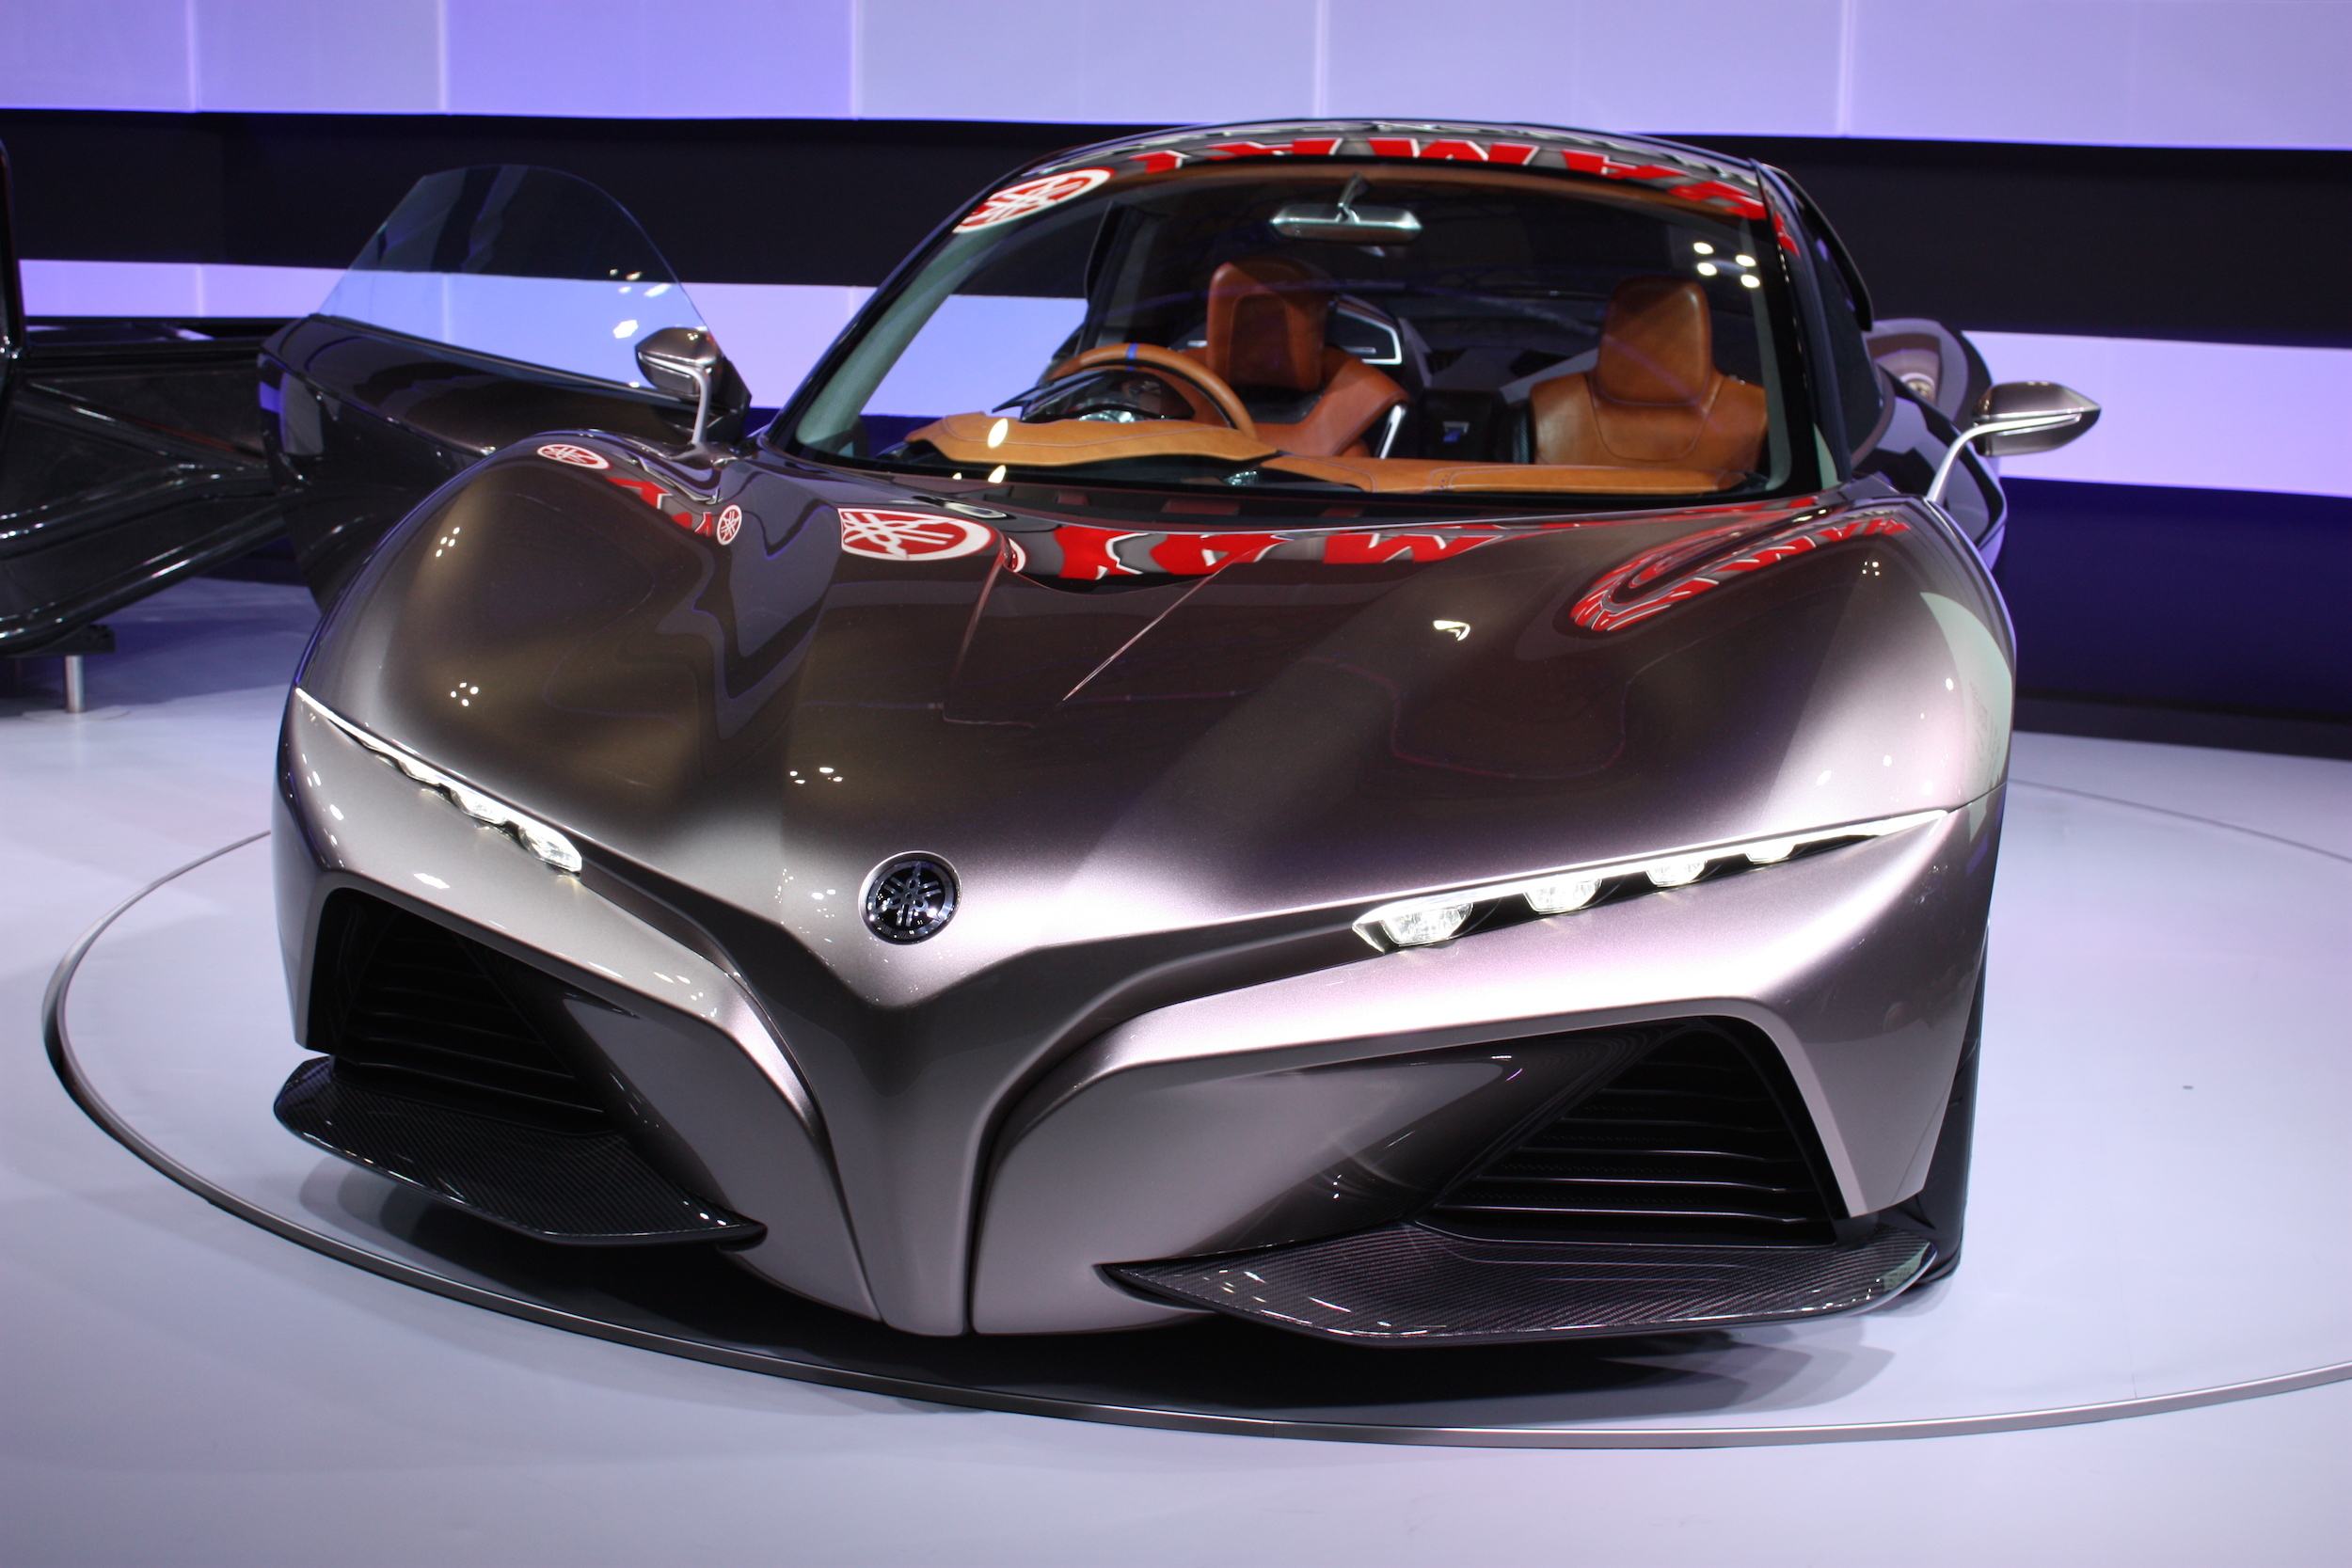 Yamaha Concept Automobile - Sport Ride 3